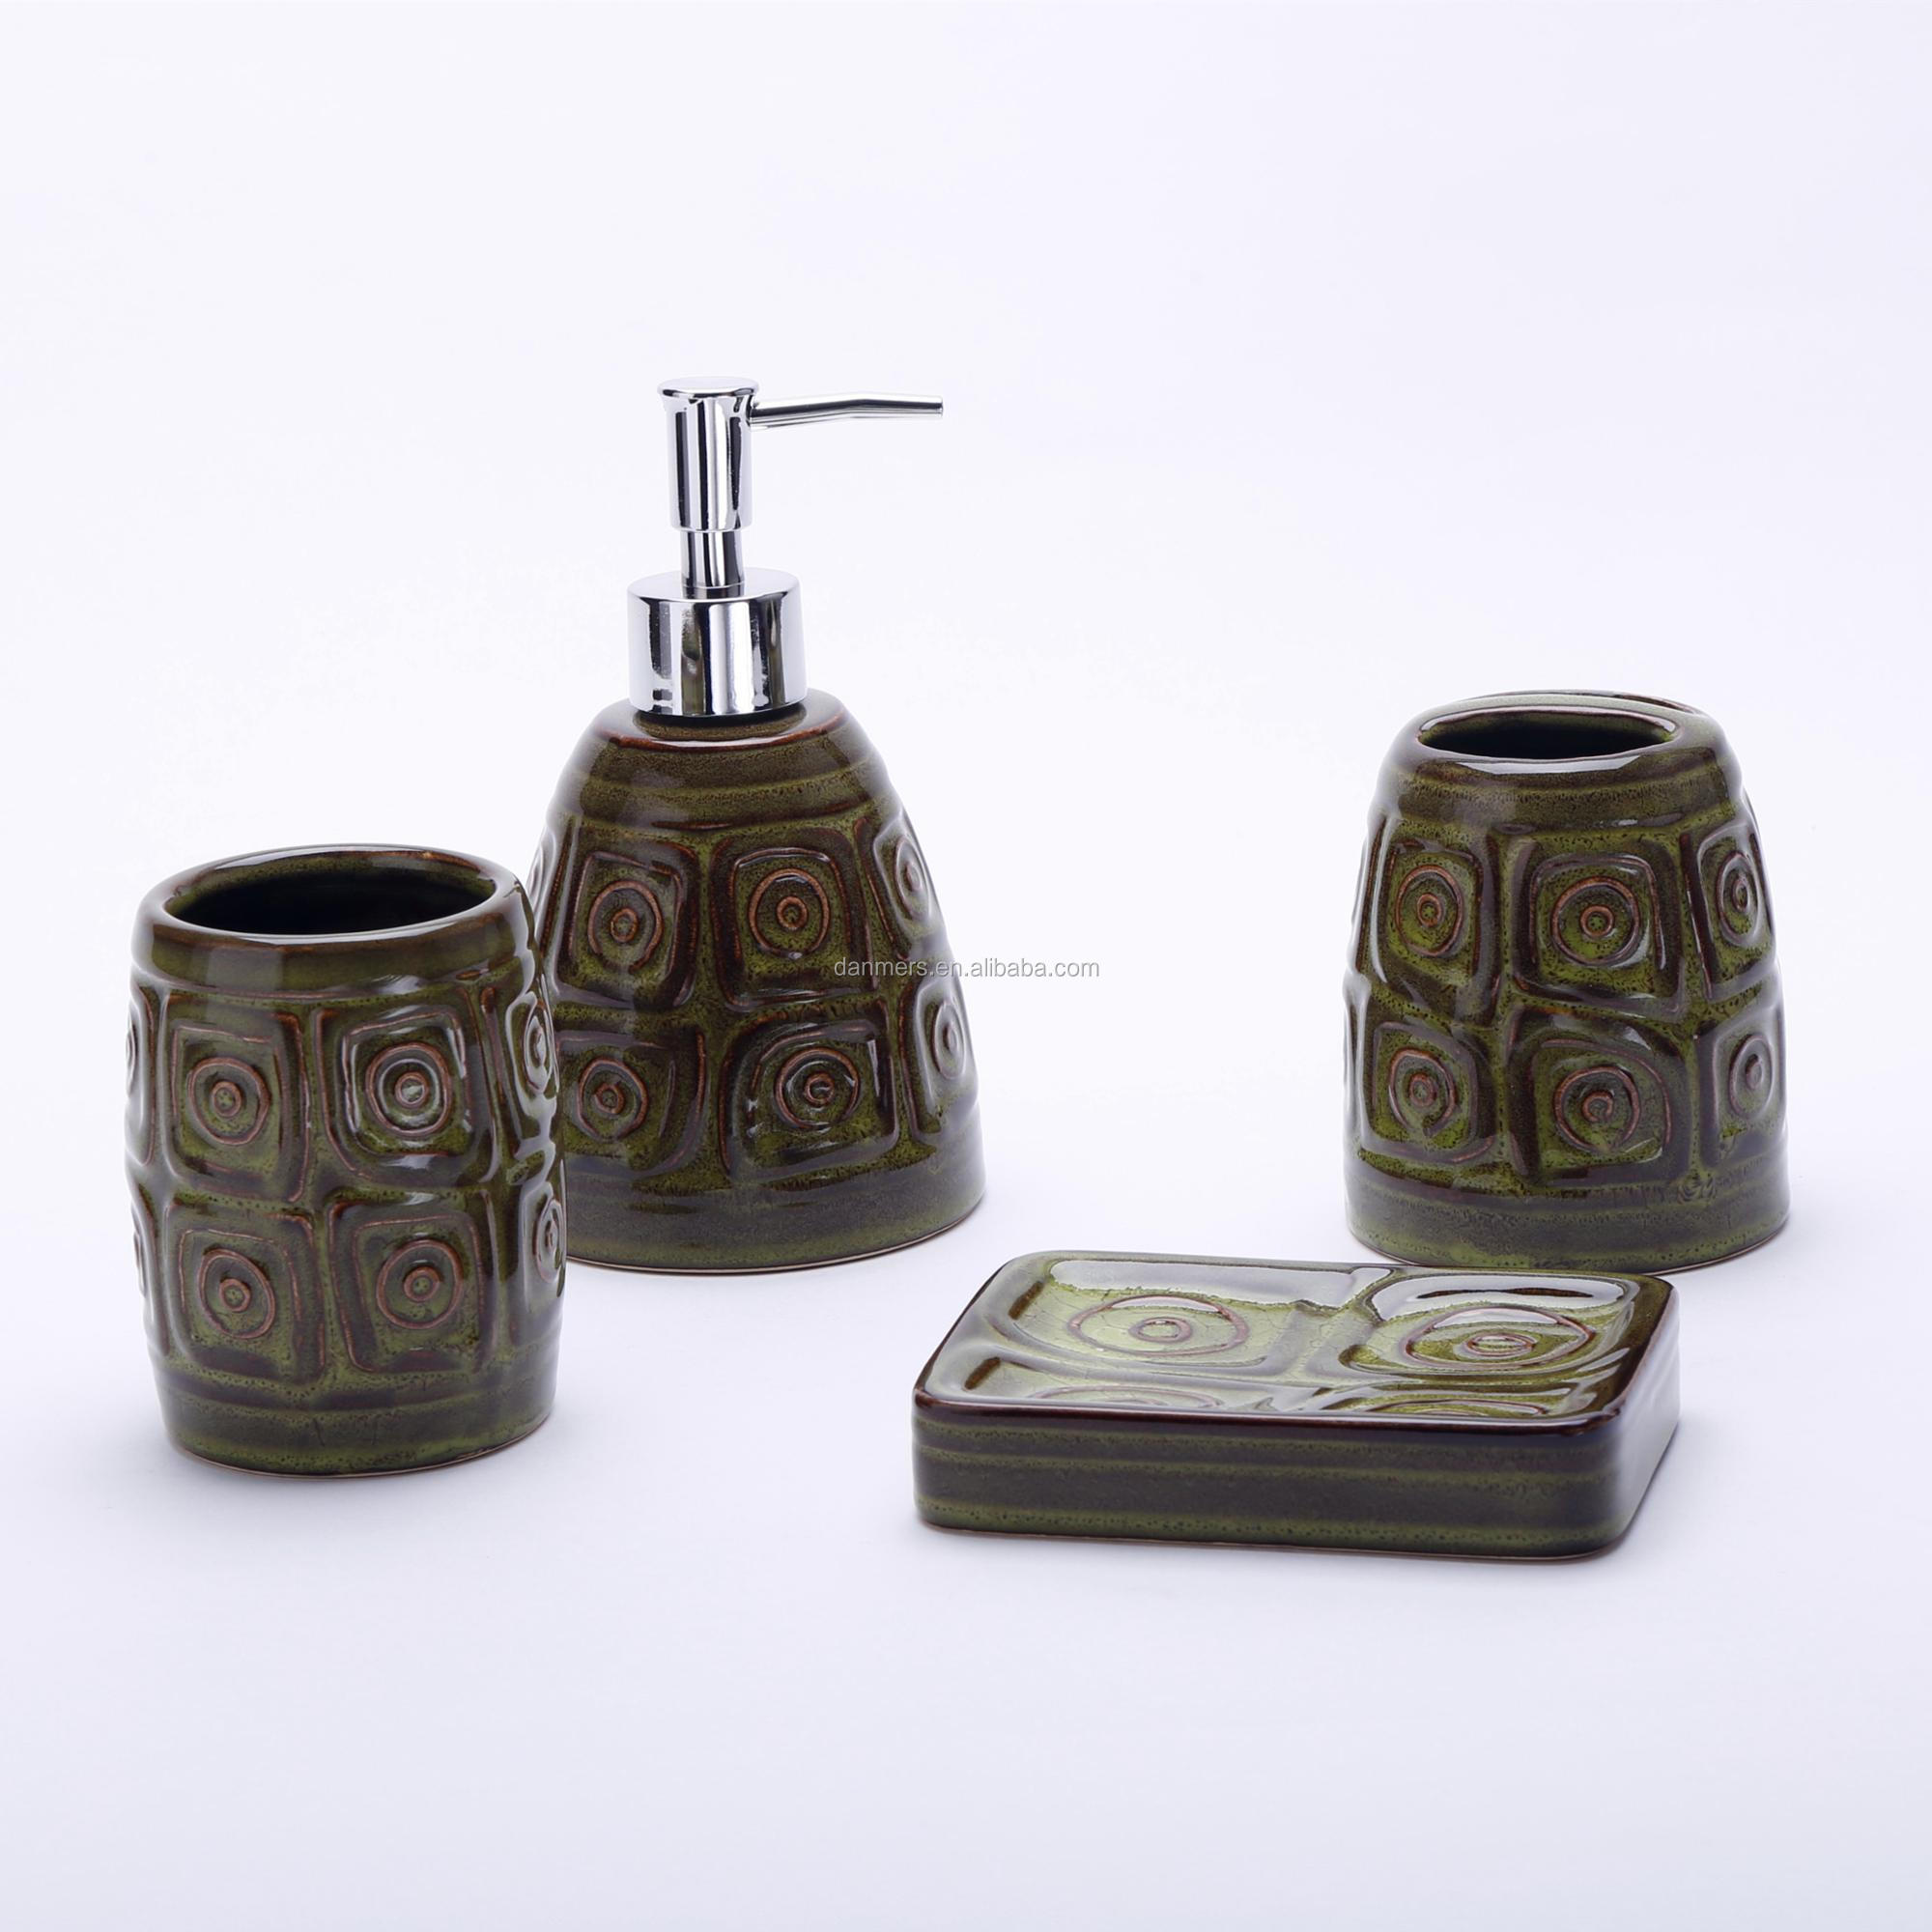 Bathroom Accessories China, Bathroom Accessories China Suppliers and ...